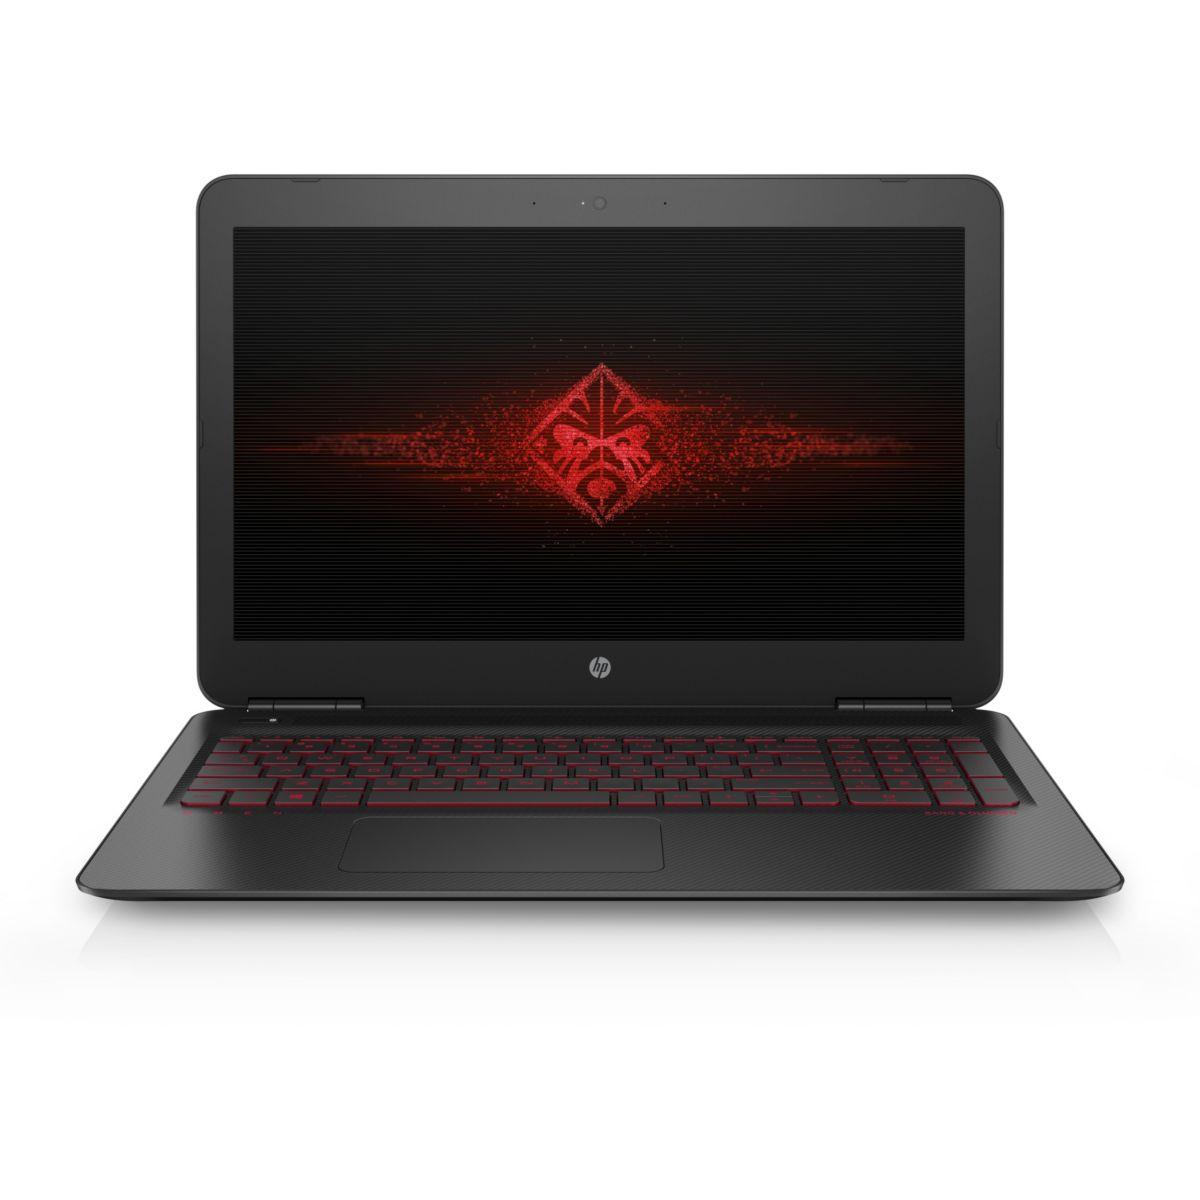 Pc portable gamer hp omen 15-ax002nf - coup de coeur de l'équipe (photo)